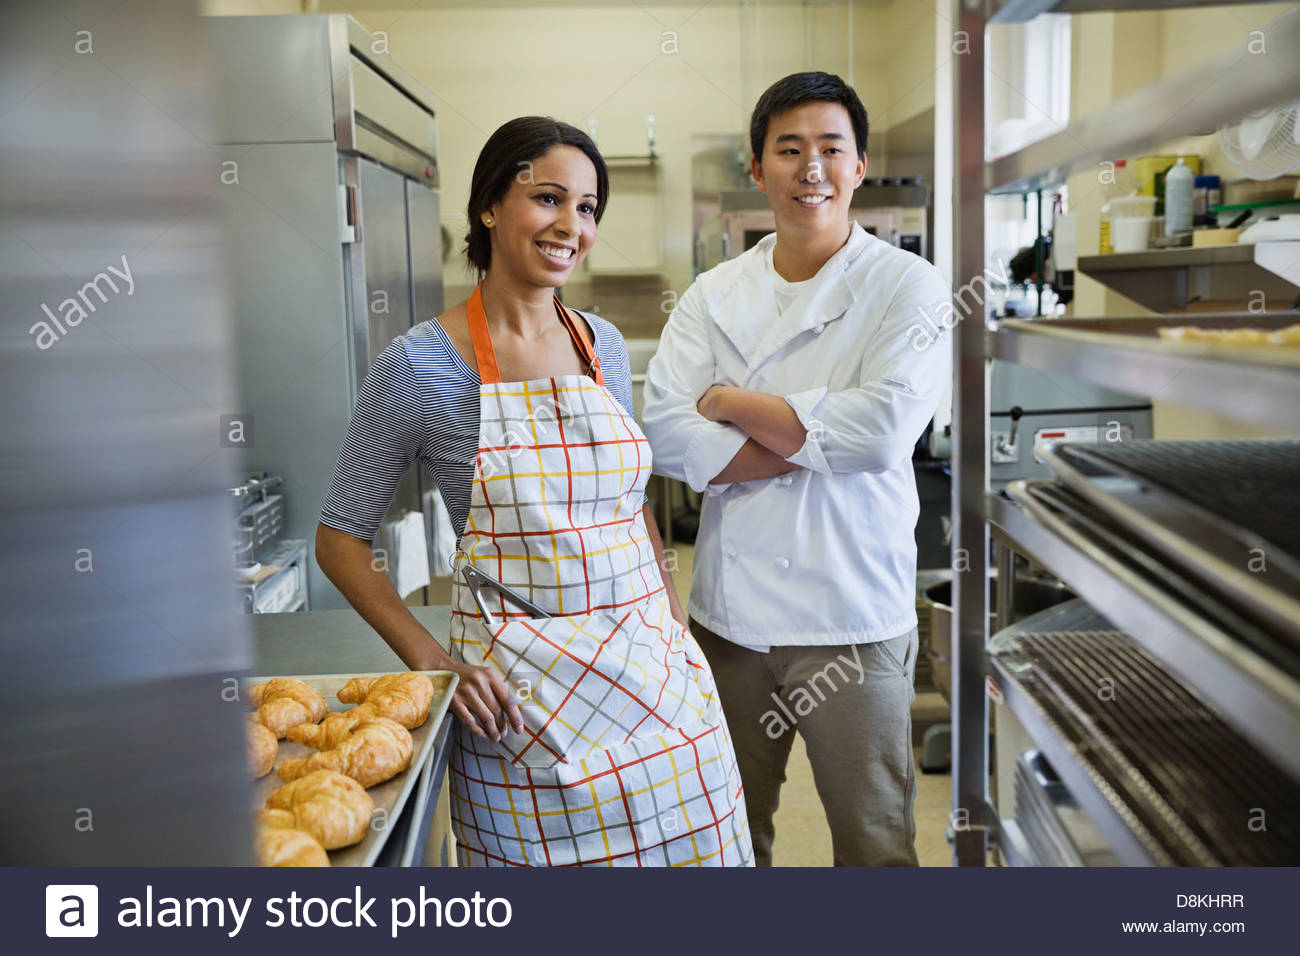 Smiling bakers standing in bakery - Stock Image